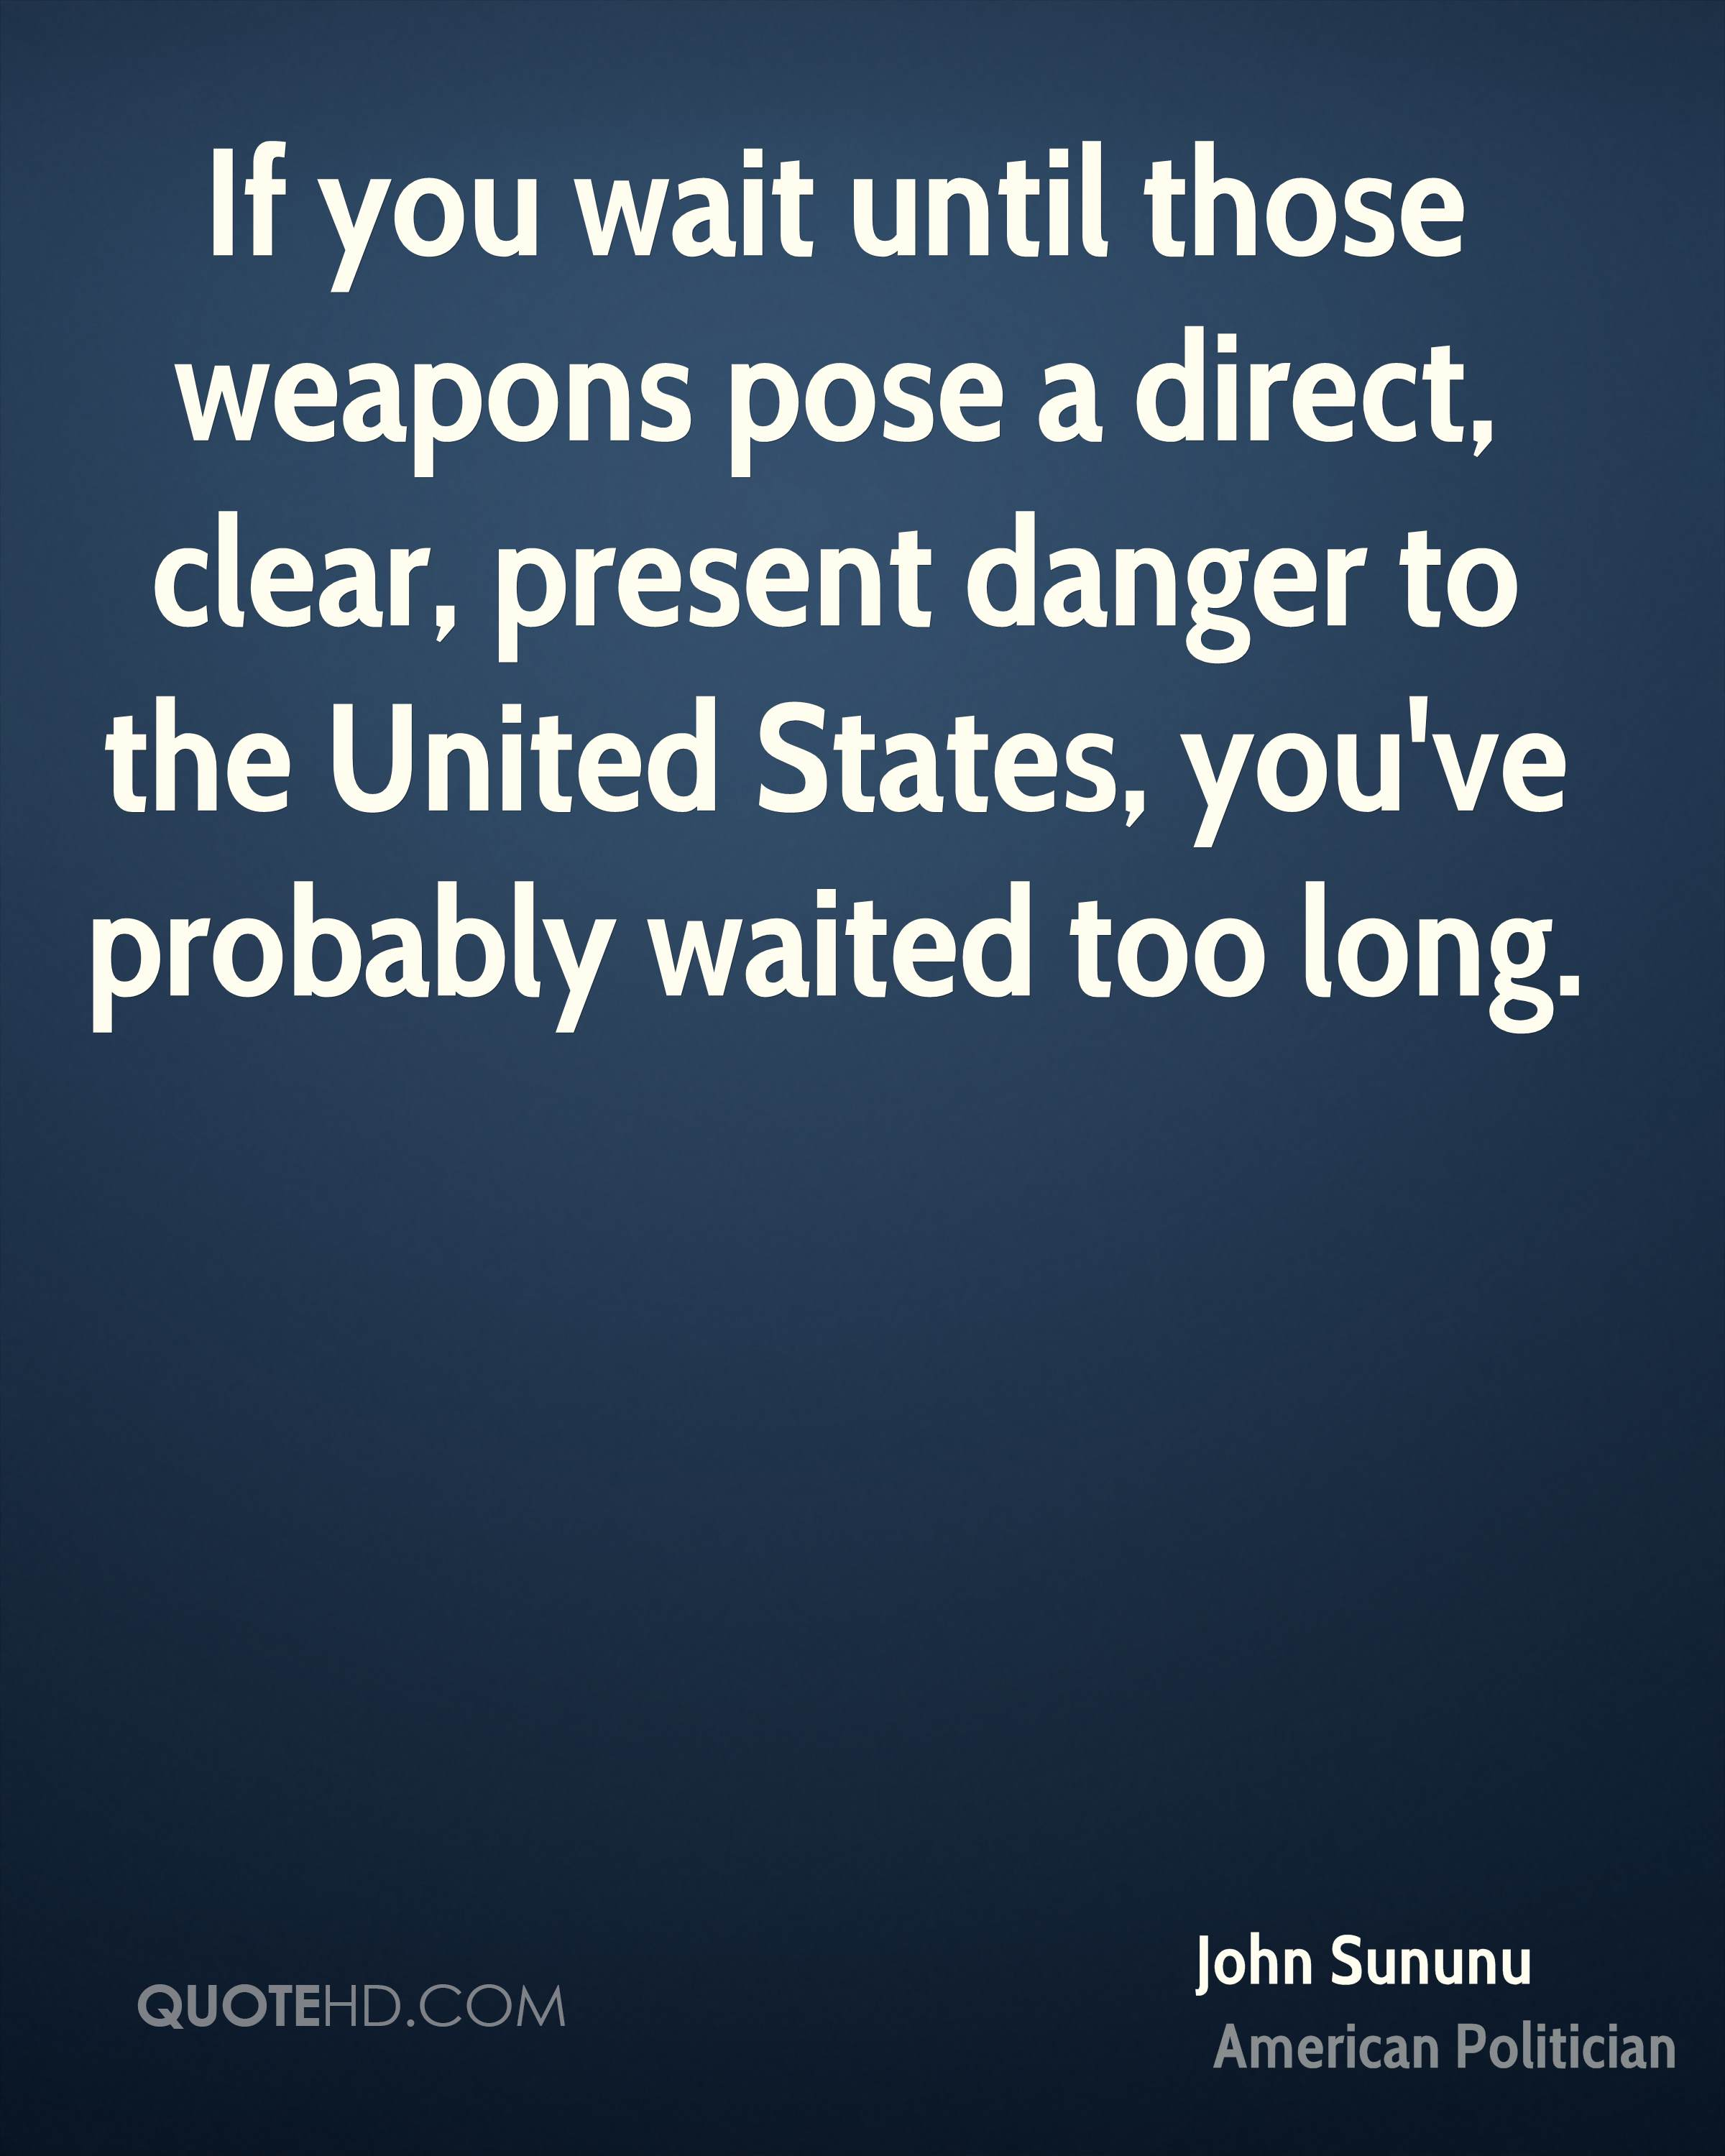 If you wait until those weapons pose a direct, clear, present danger to the United States, you've probably waited too long.